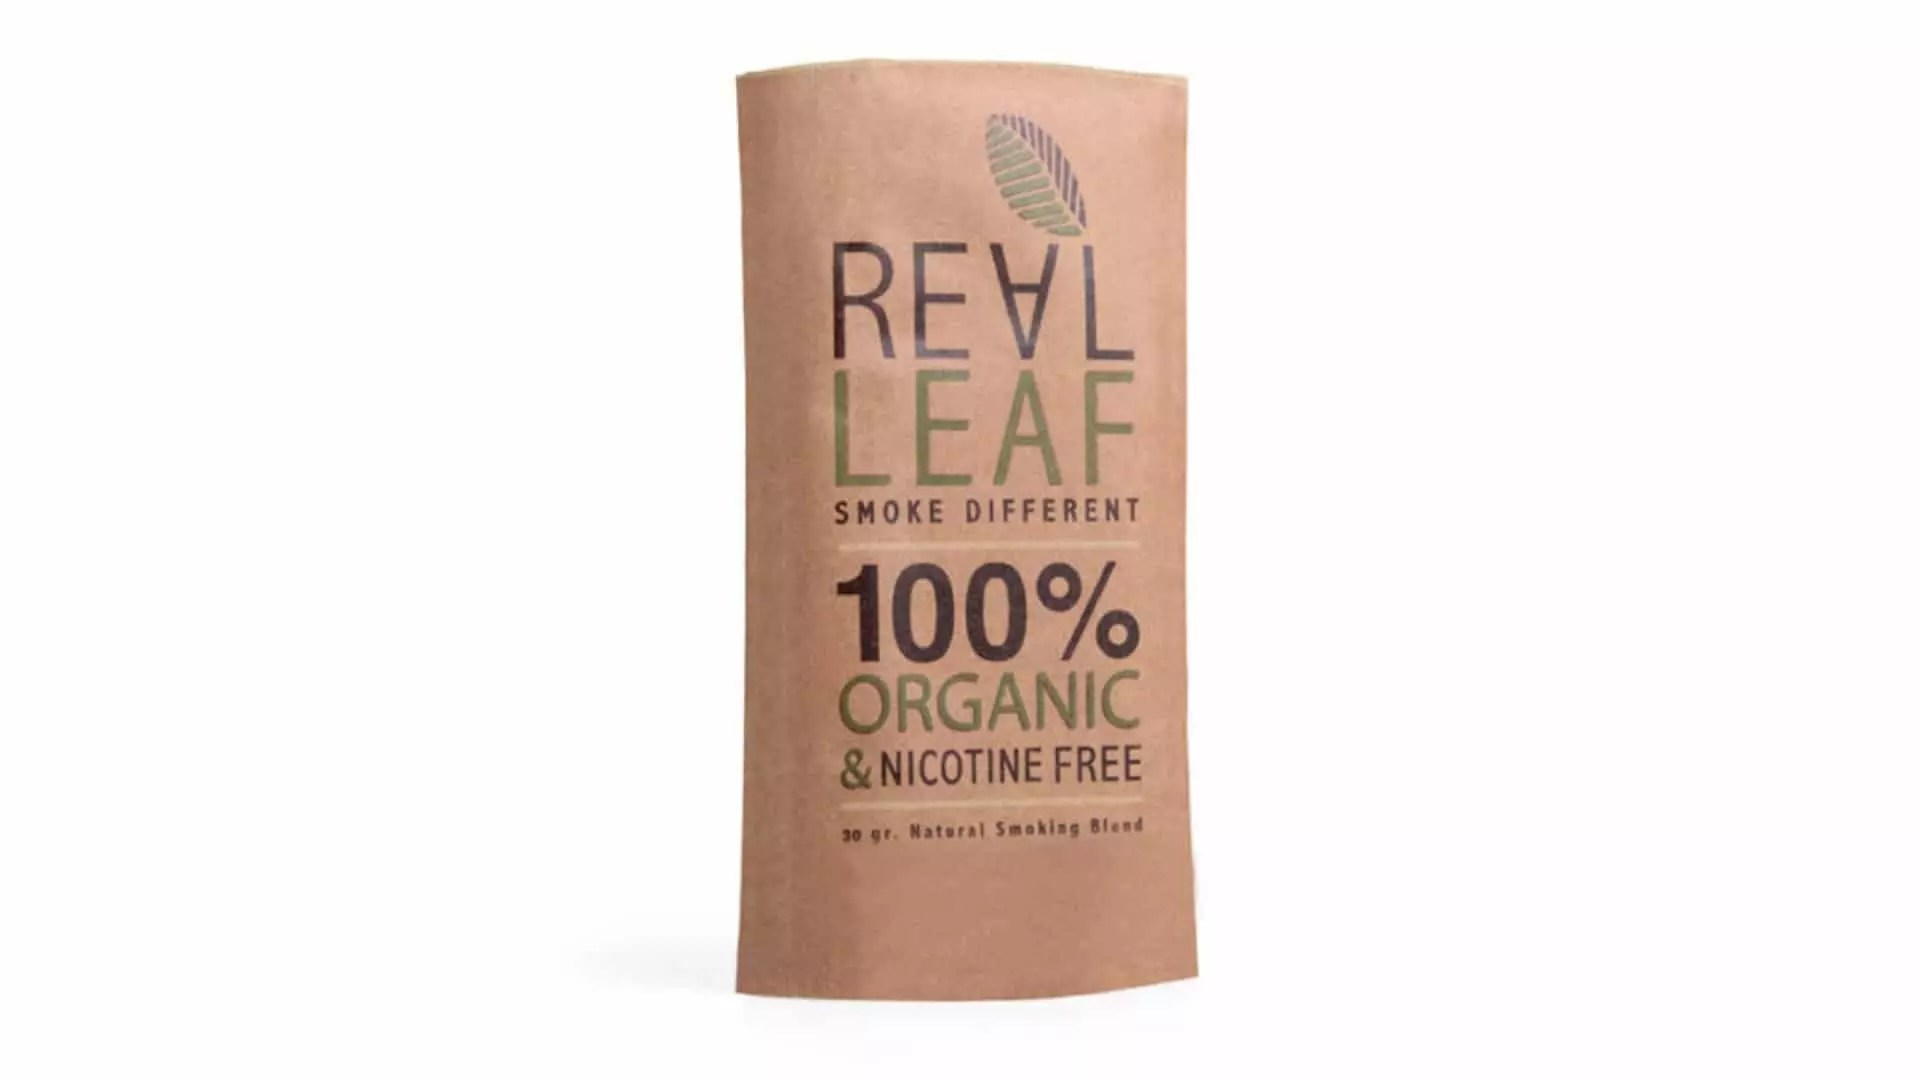 REAL LEAF TOBACCO ALTERNATIVE